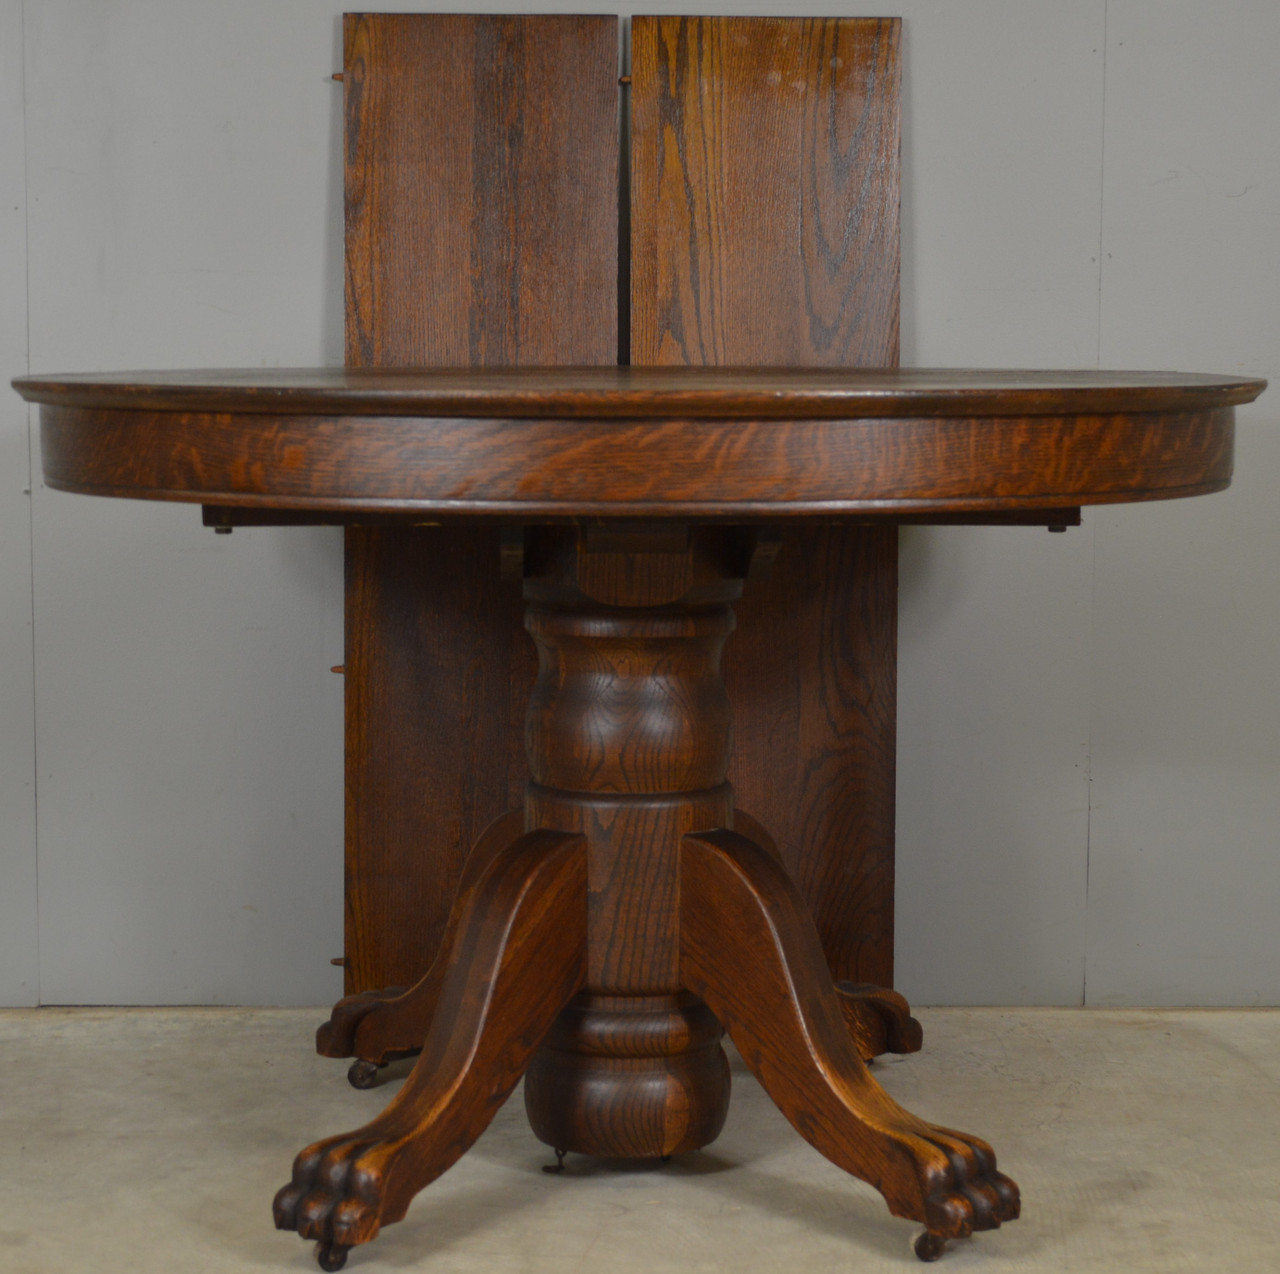 Sold Victorian Round Oak Claw Foot Banquet Dining Table Maine Antique Furniture